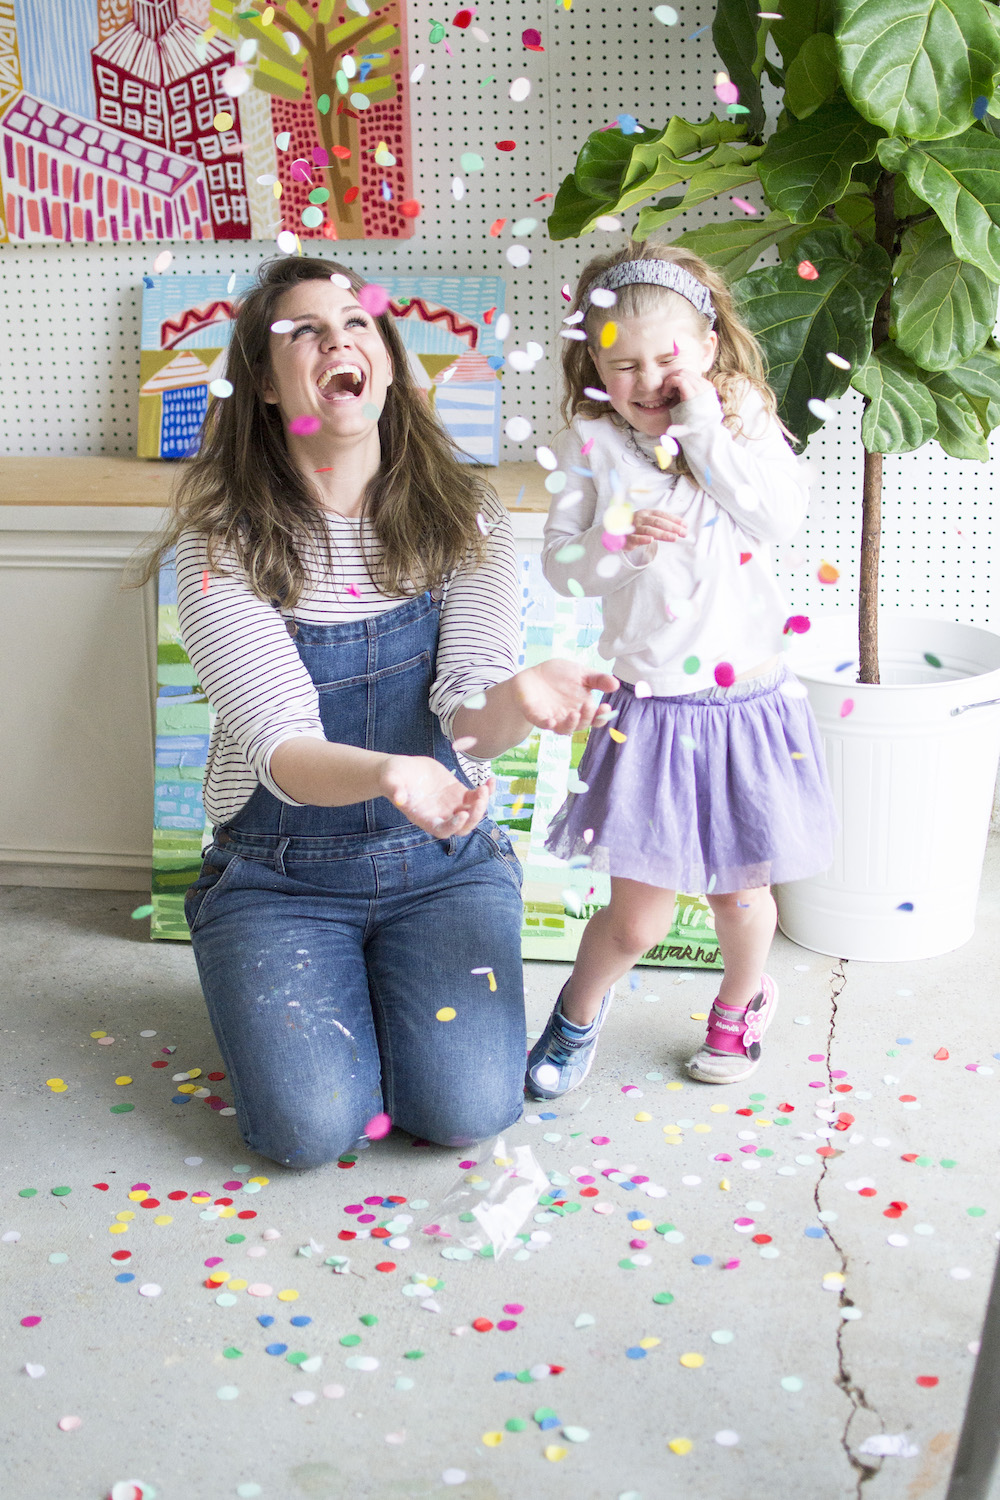 memphis family photographer - throwing confetti.jpg